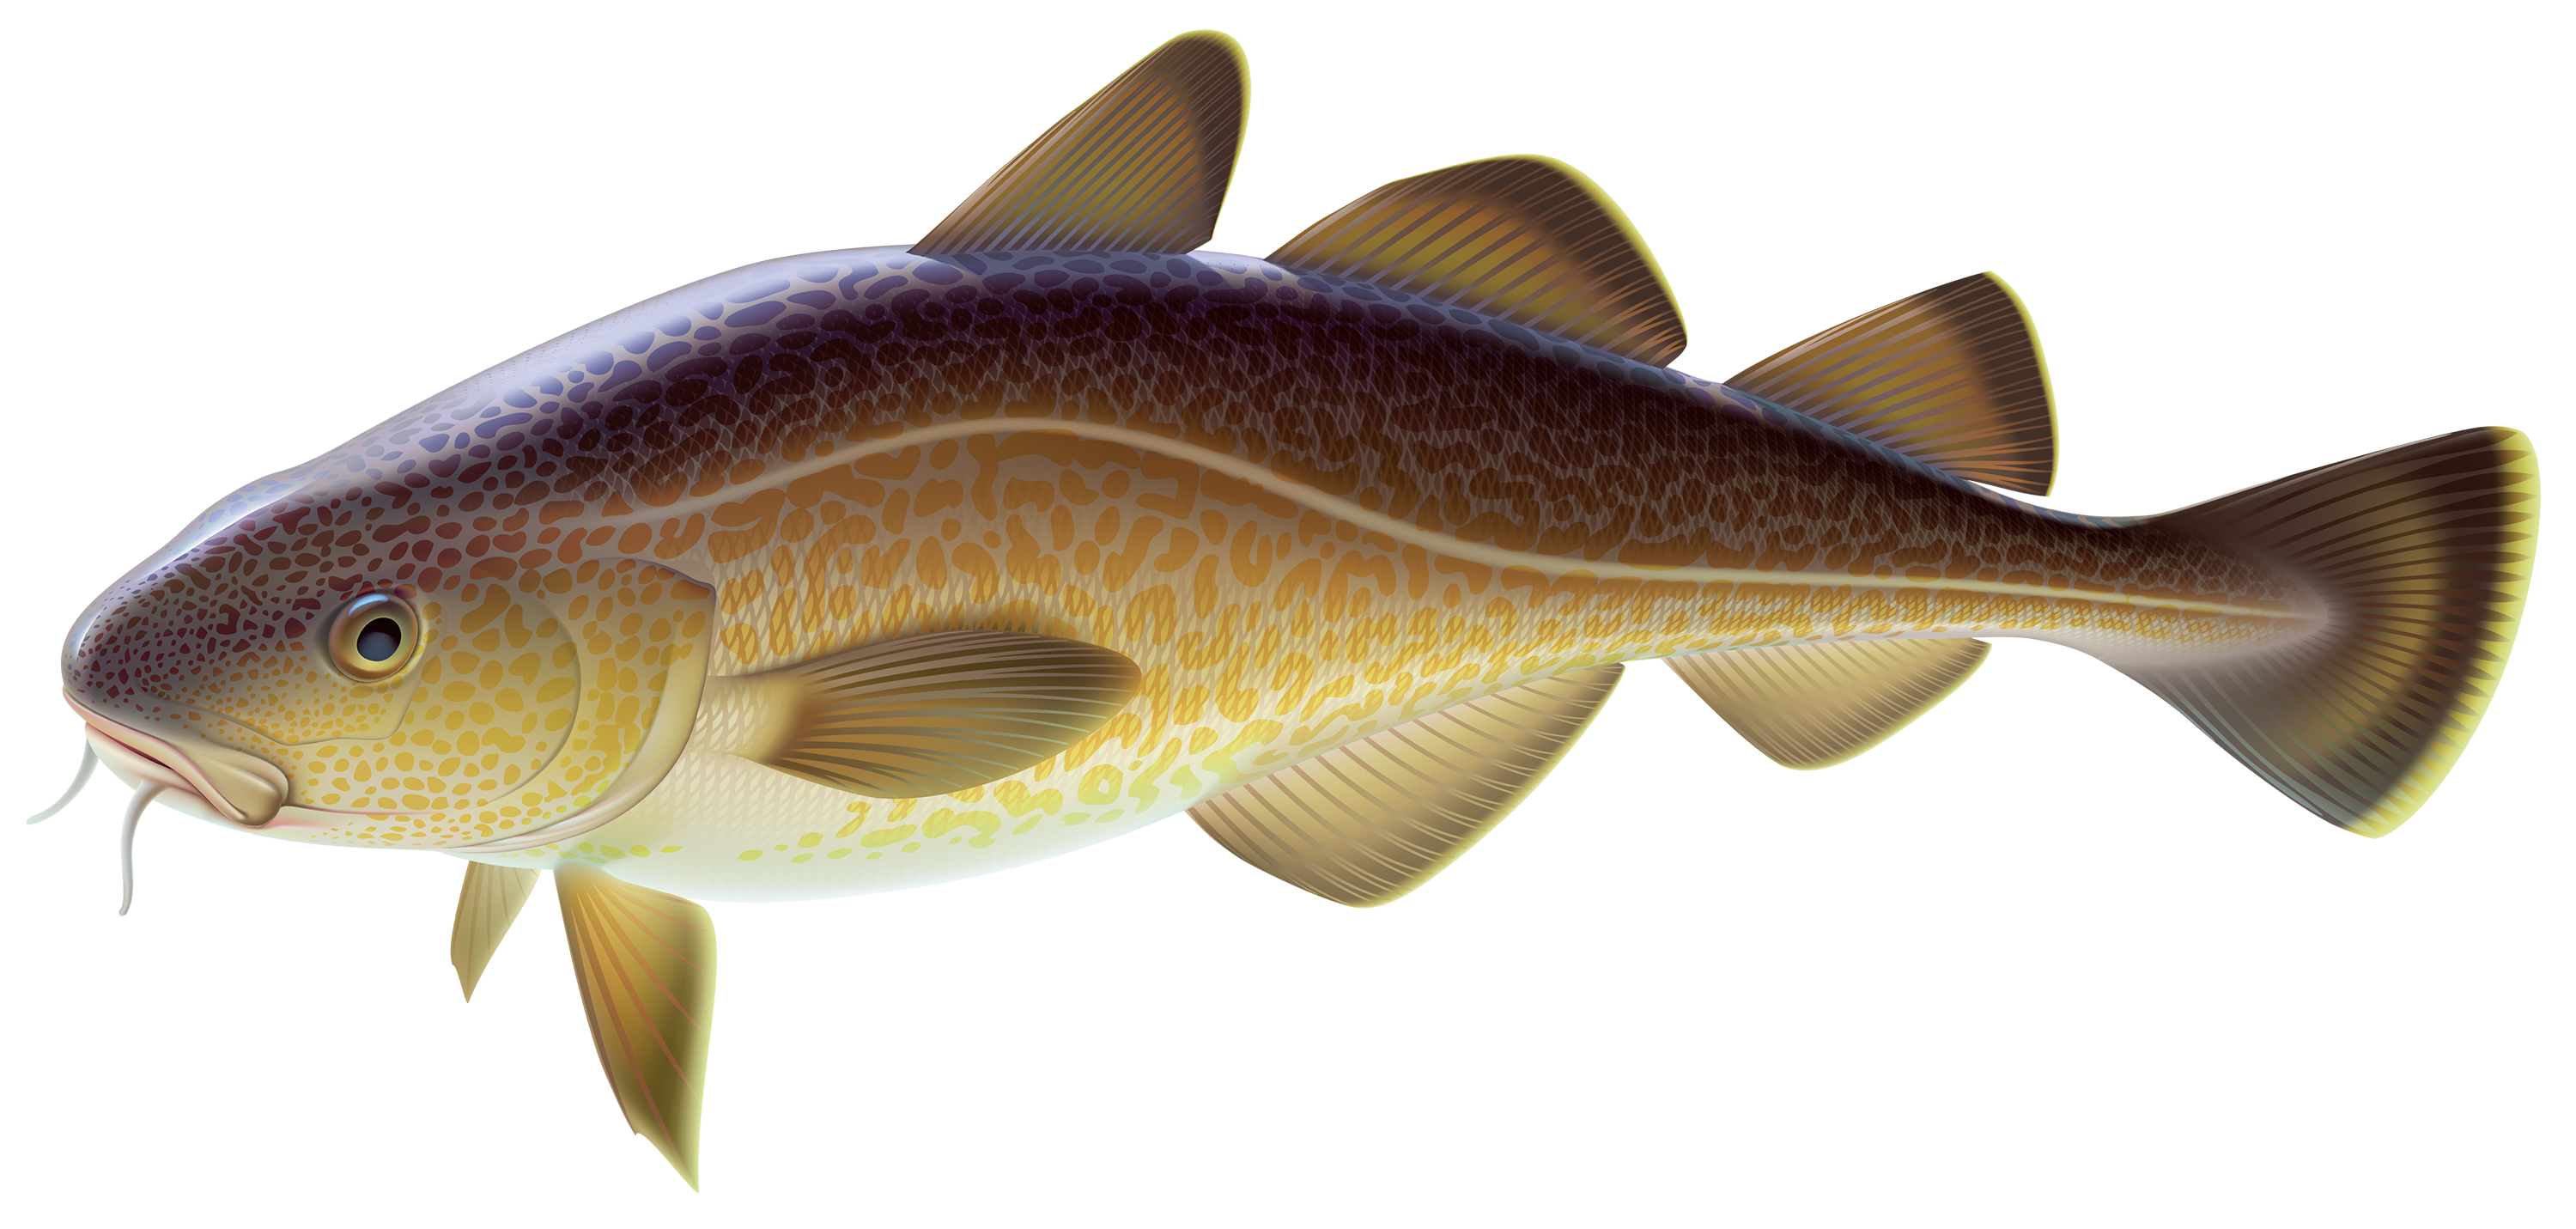 Wood fish clipart svg free library Carp Fish PNG Clipart - Best WEB Clipart svg free library